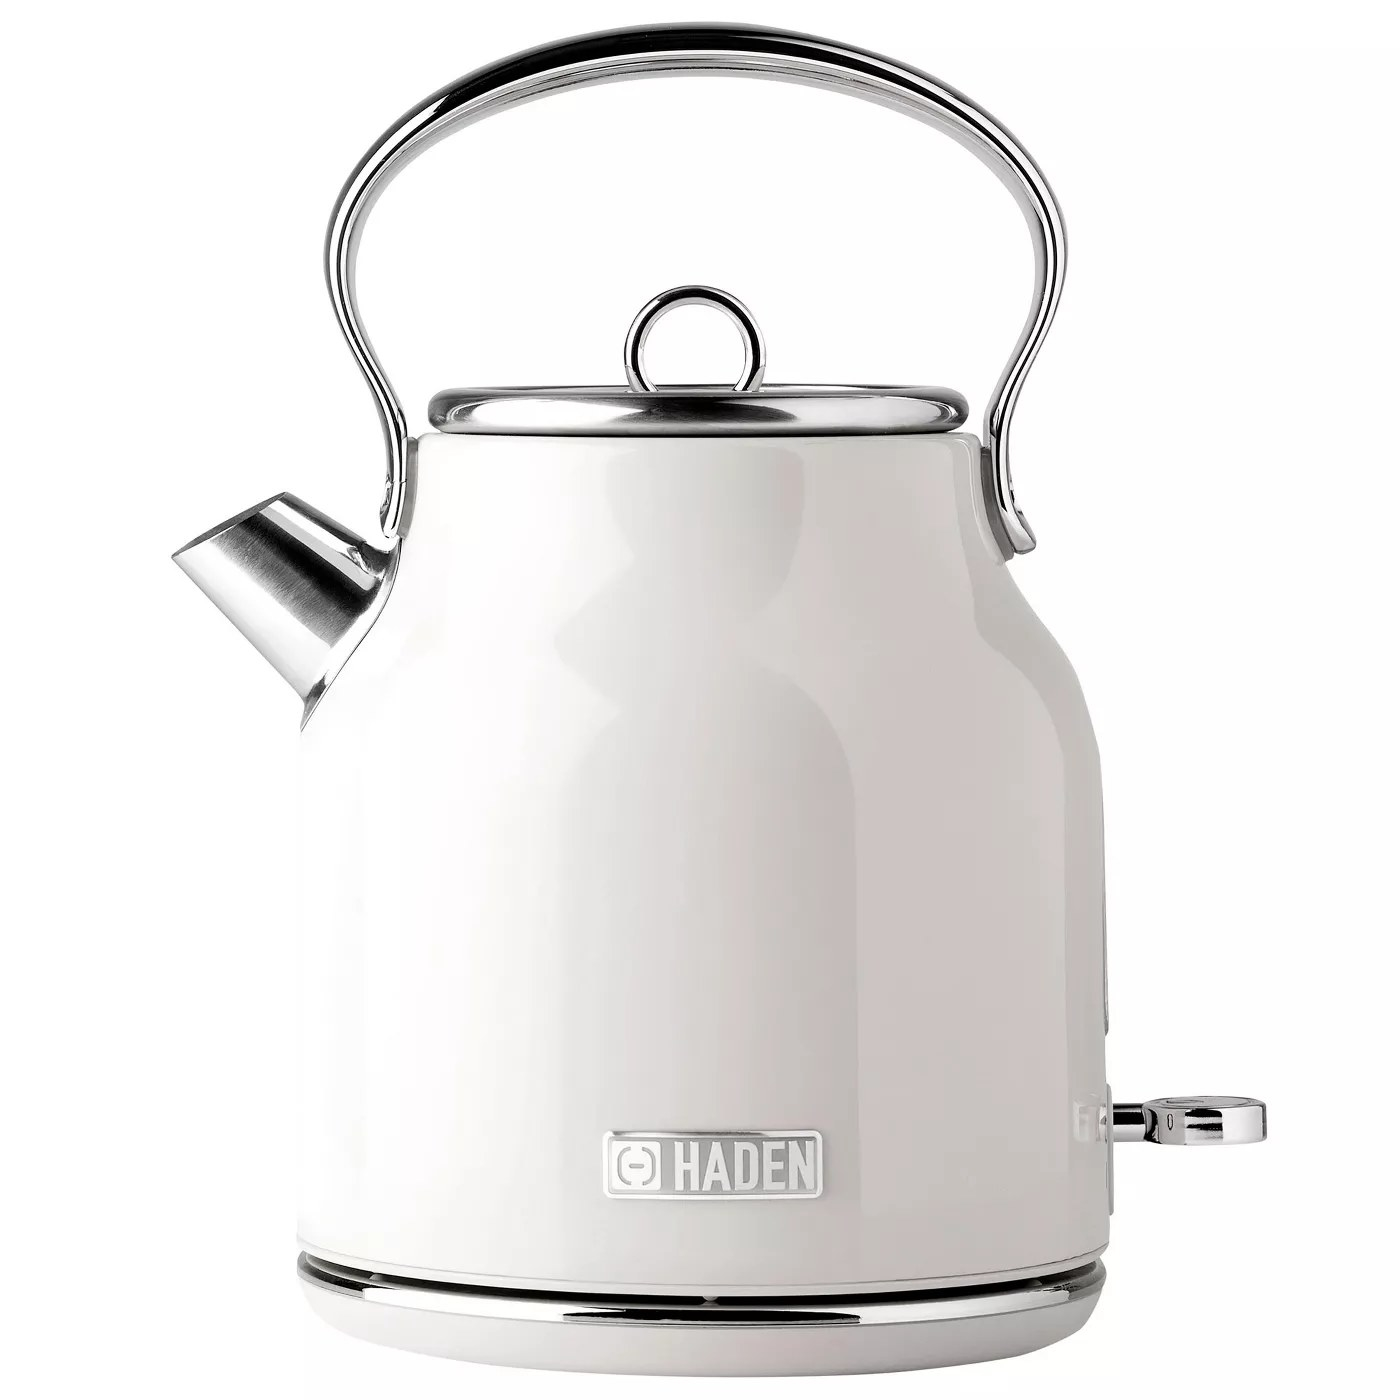 The white electric tea kettle